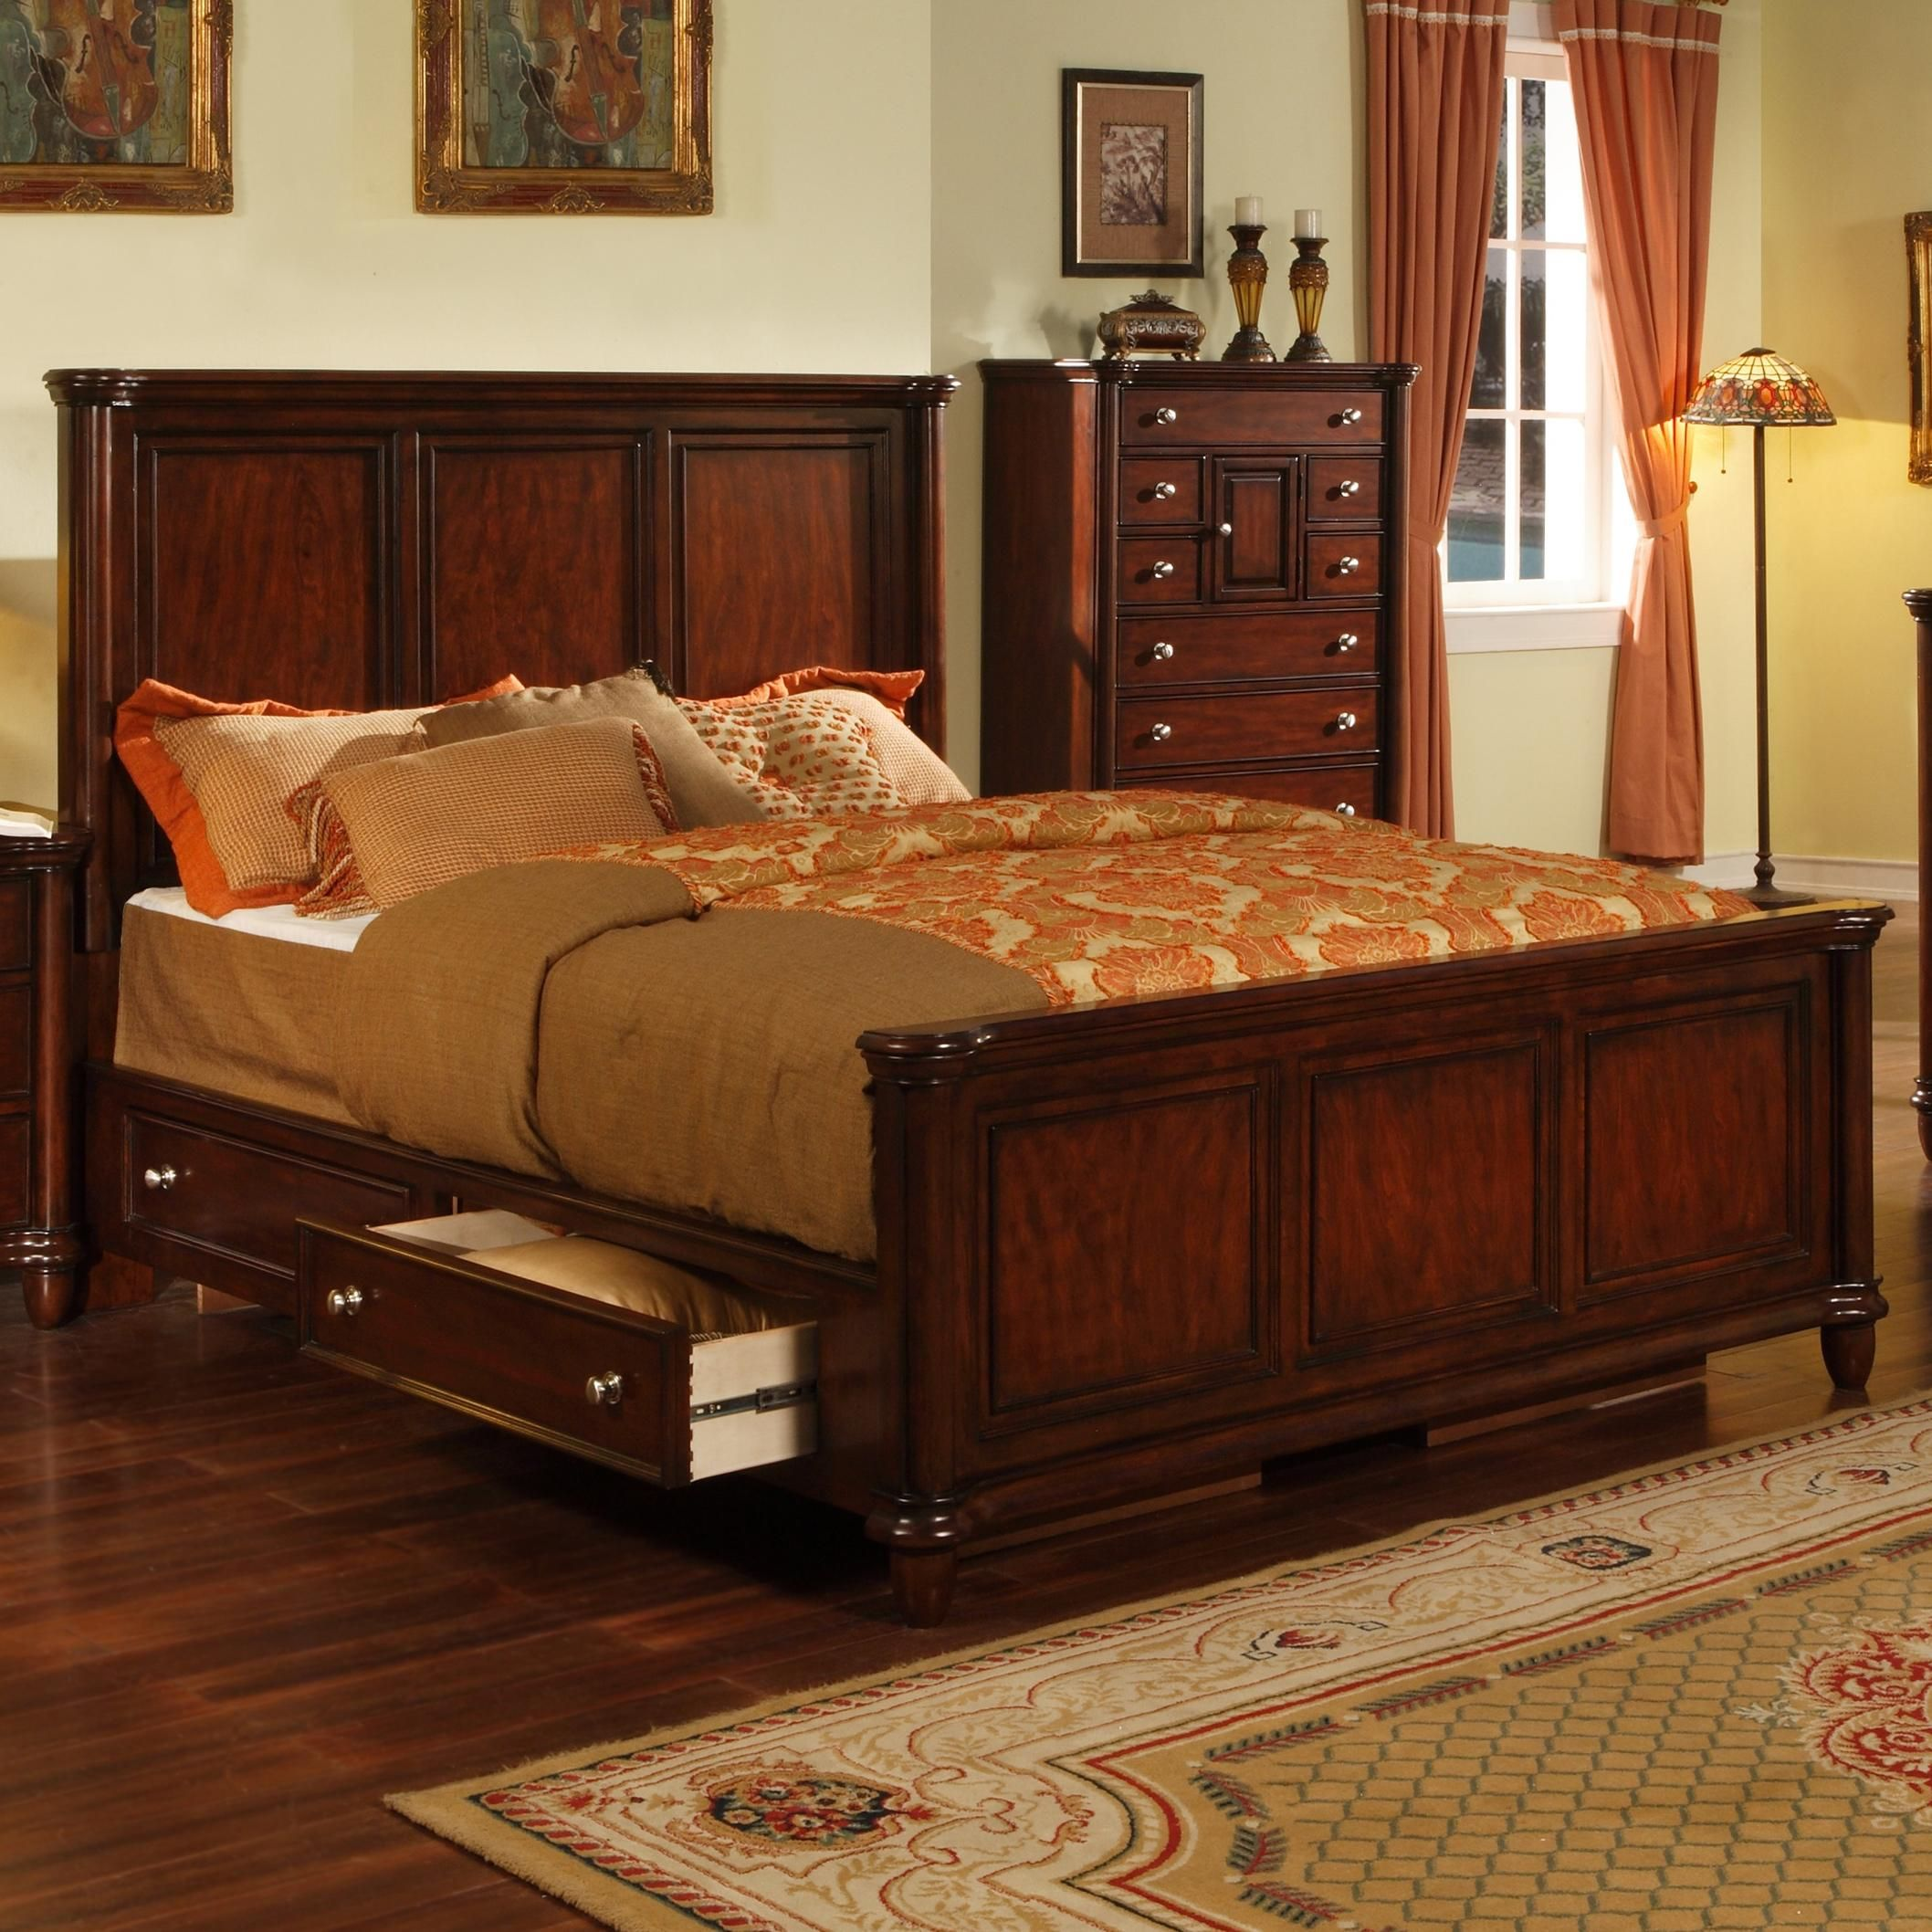 Master bedroom king bed Lockport Lockport King Storage Bed by Morris Home Furnishings